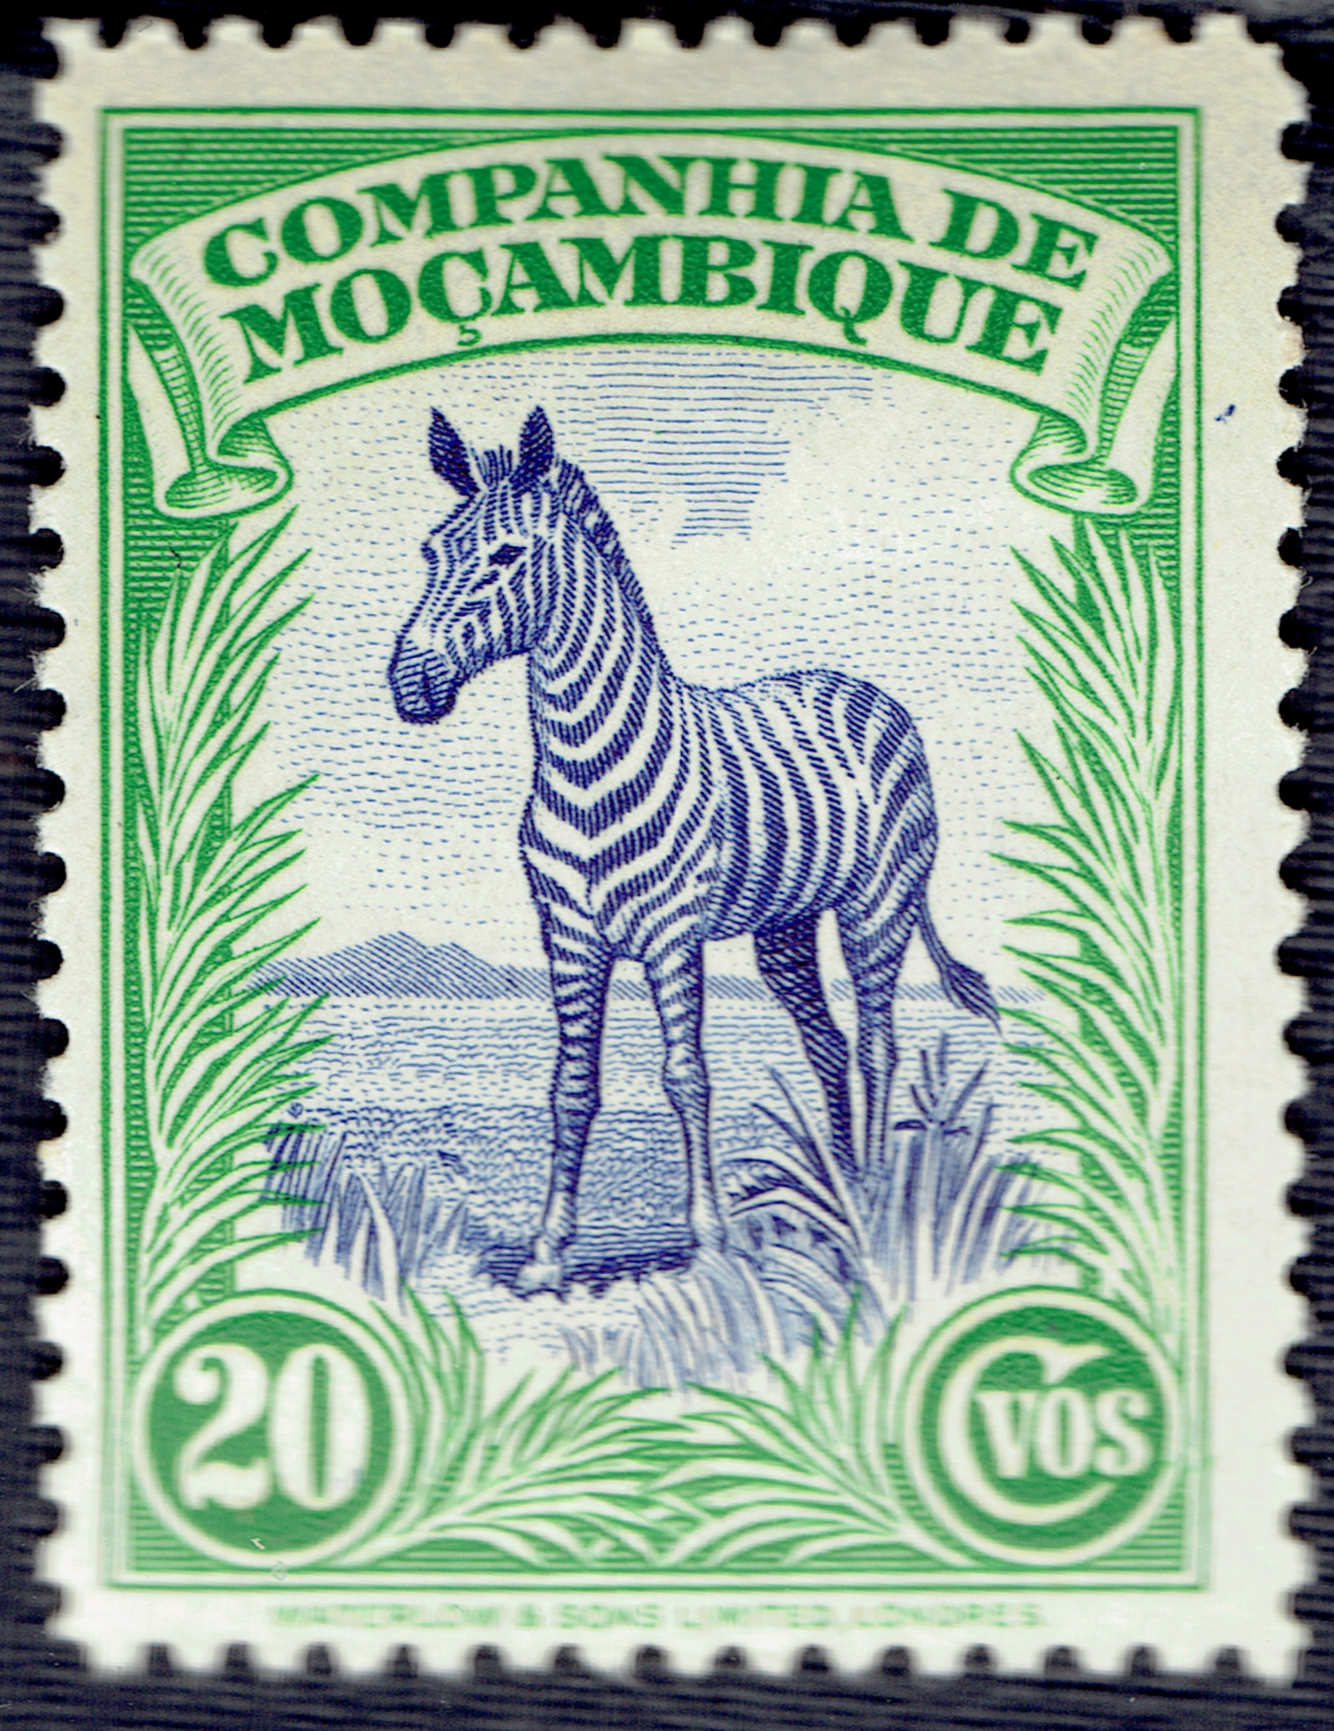 Mozambique Company - Scott #179 (1937)